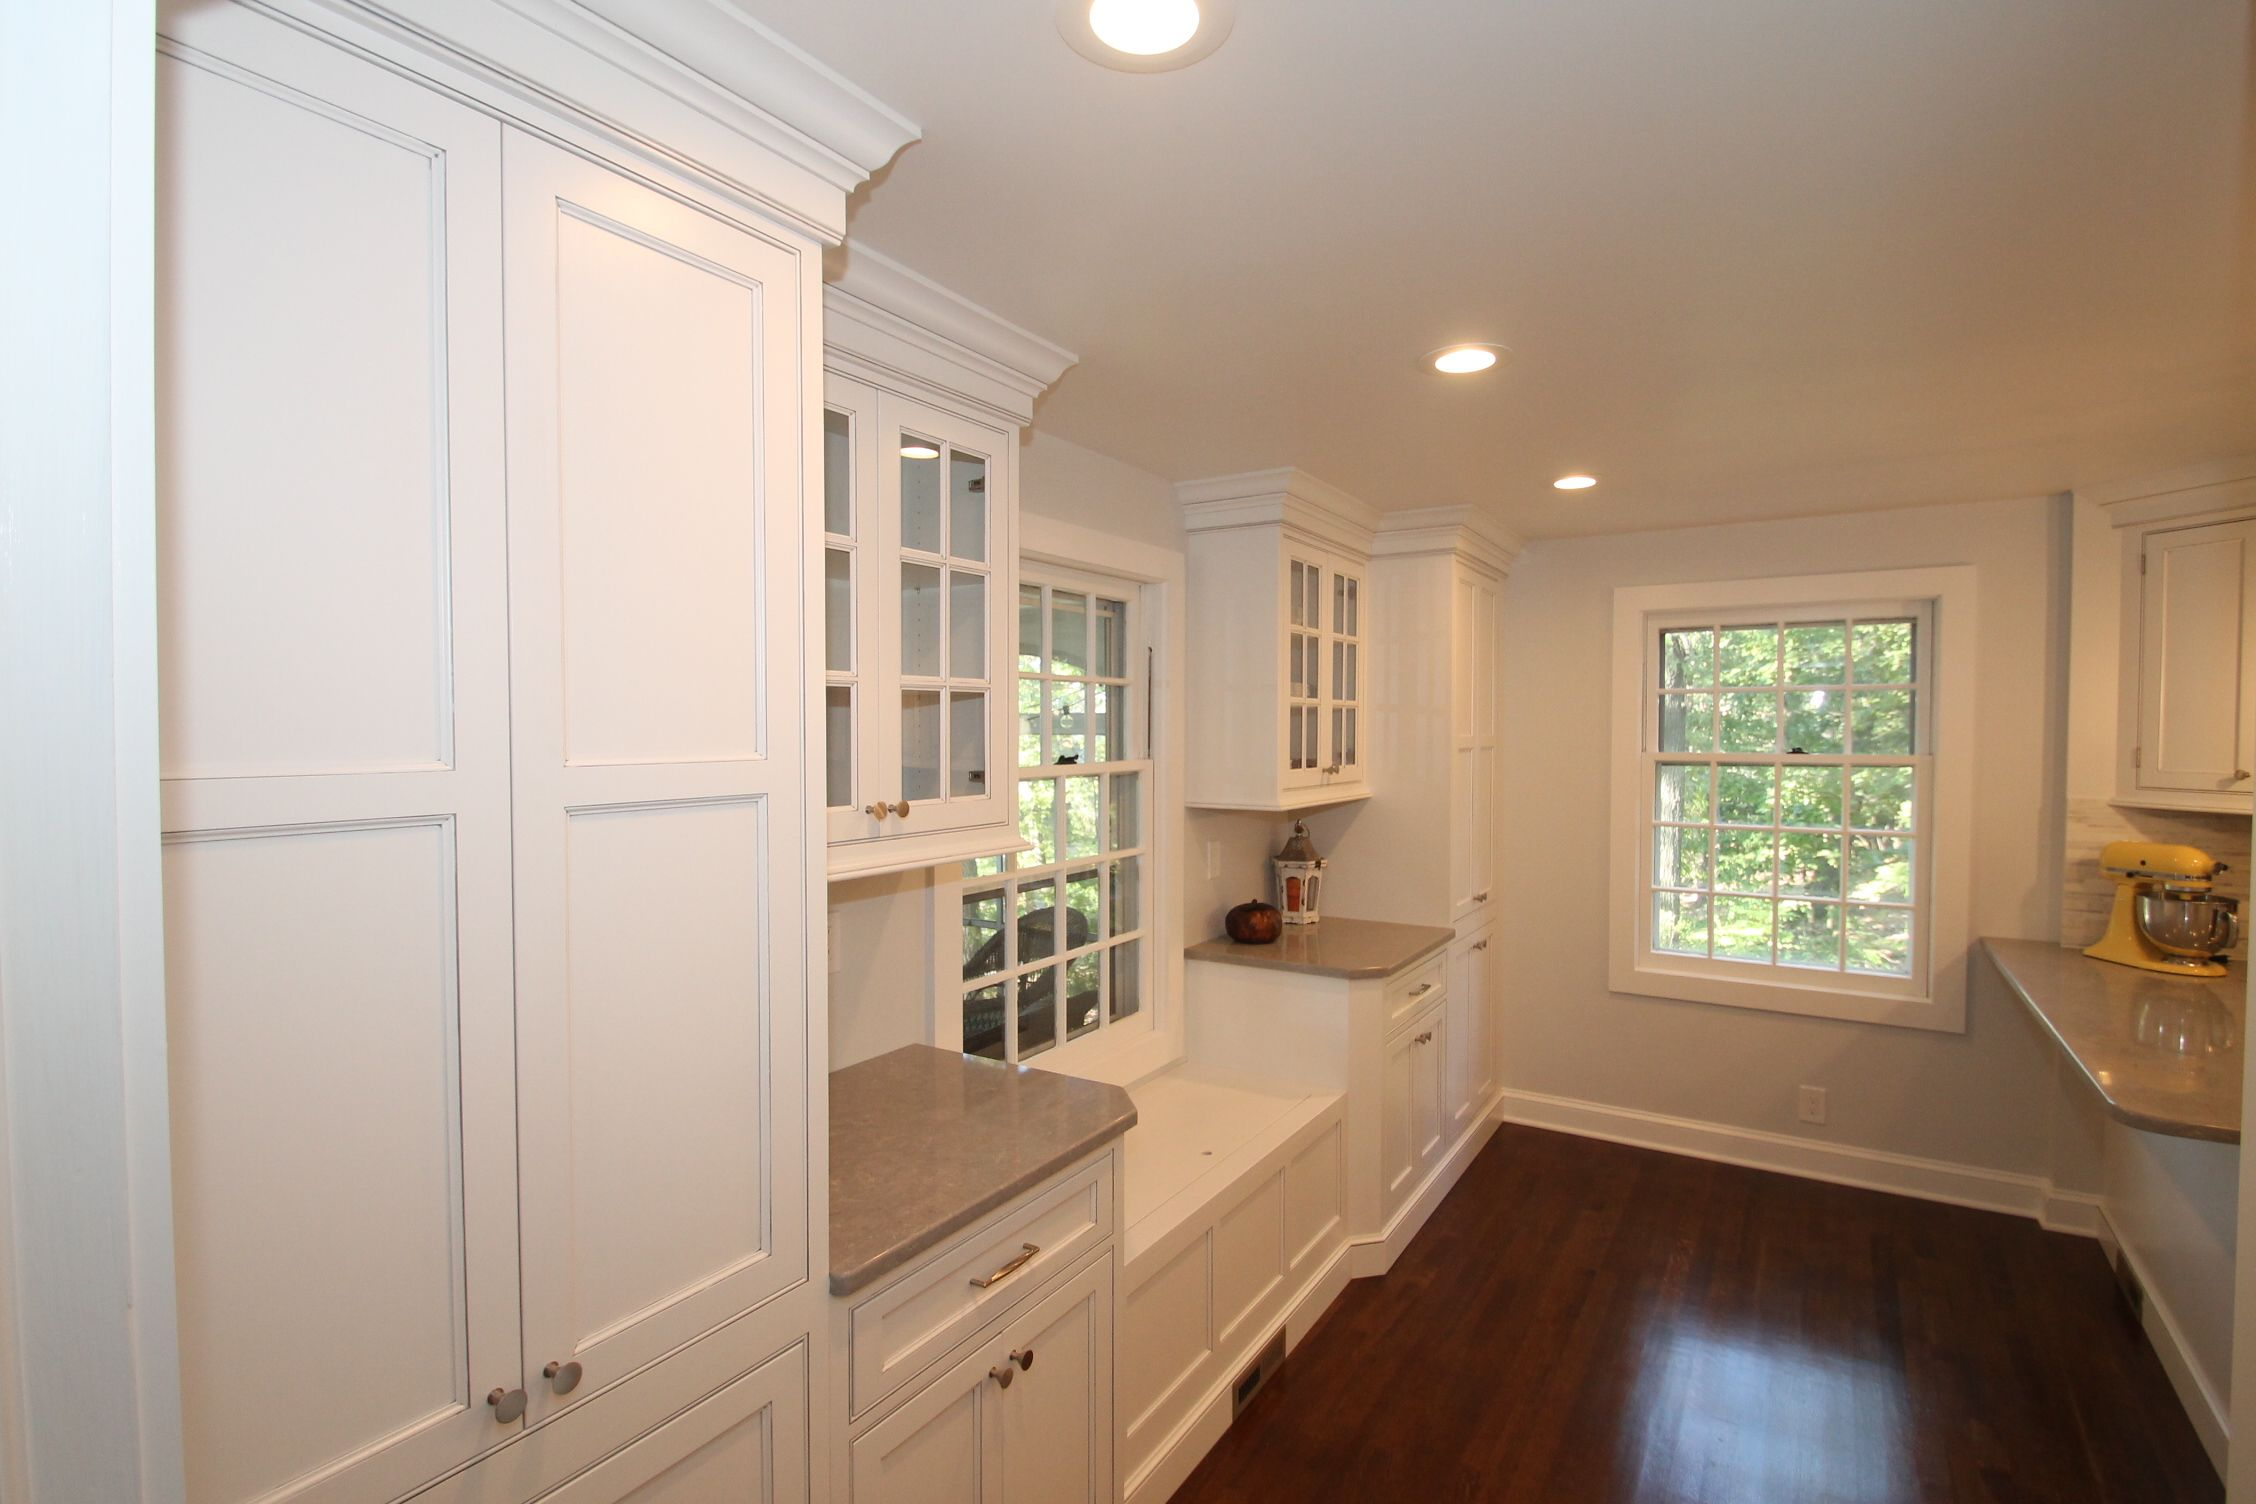 Our Customer In Verona Selected Classic White Inset Cabinetry Which Blended Well With Their 1920 S Discount Kitchen Cabinets Inset Cabinetry Counter Seating